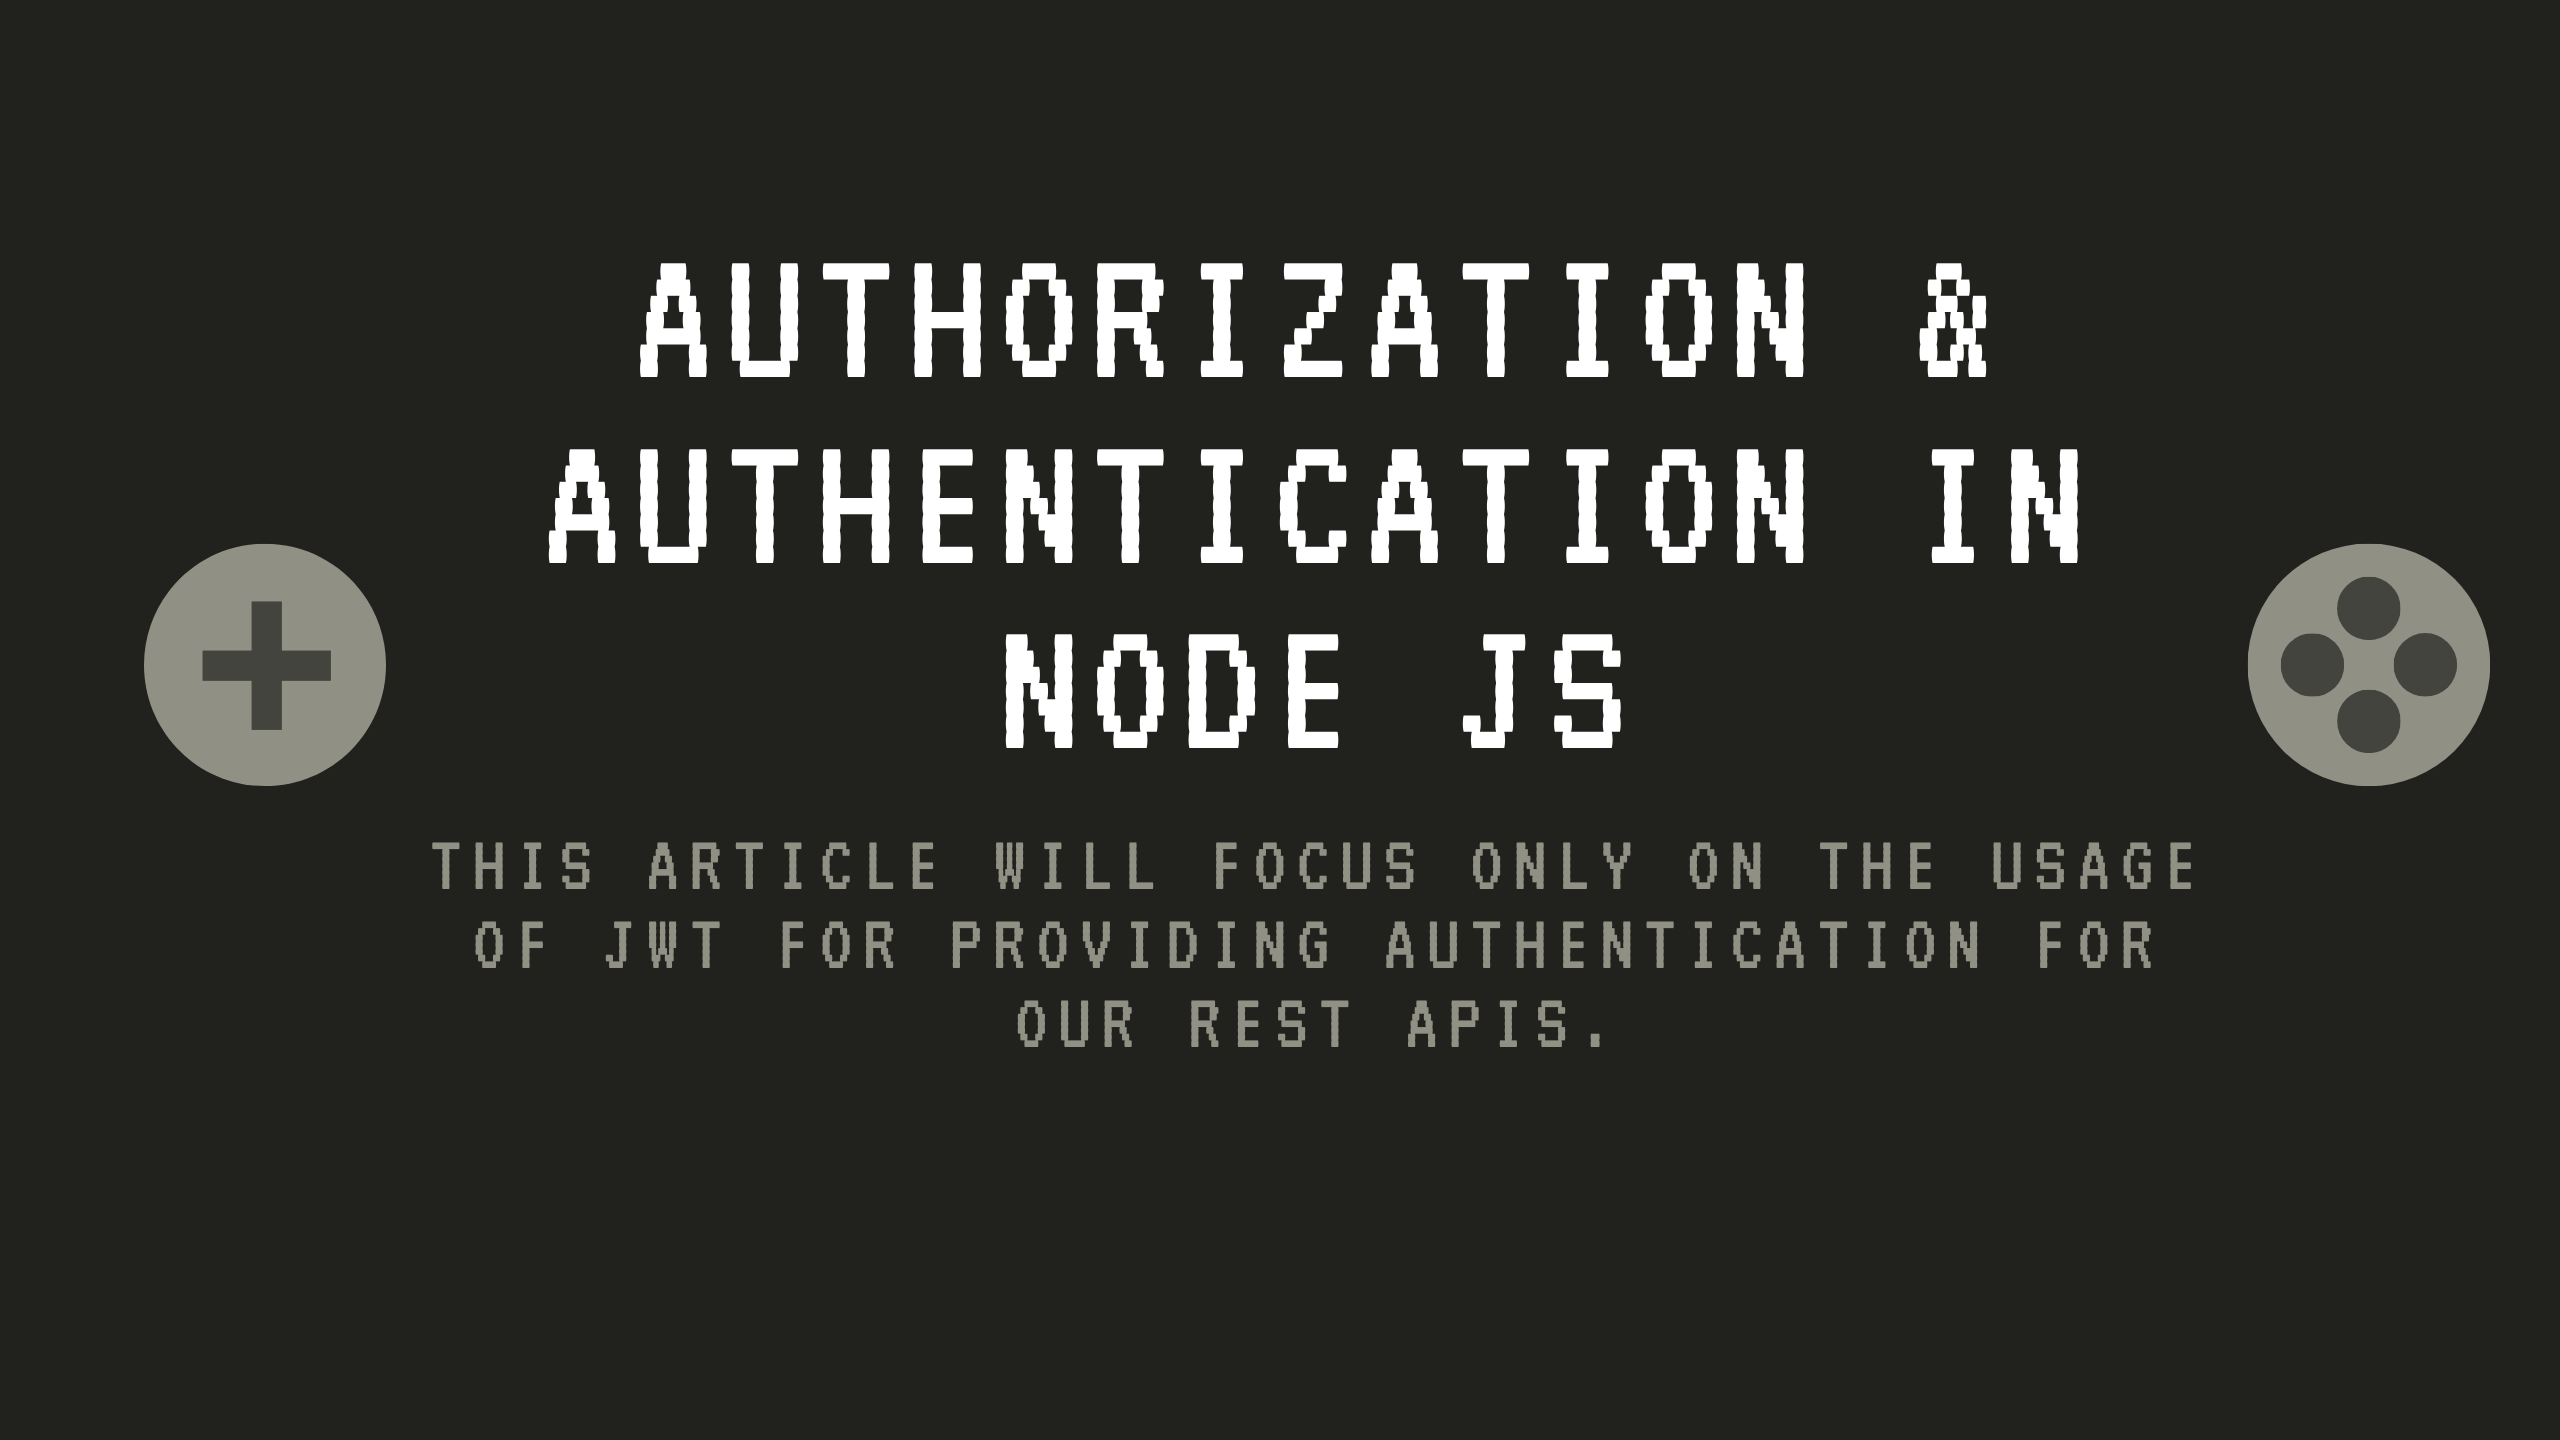 Authorization & Authentication in Node JS